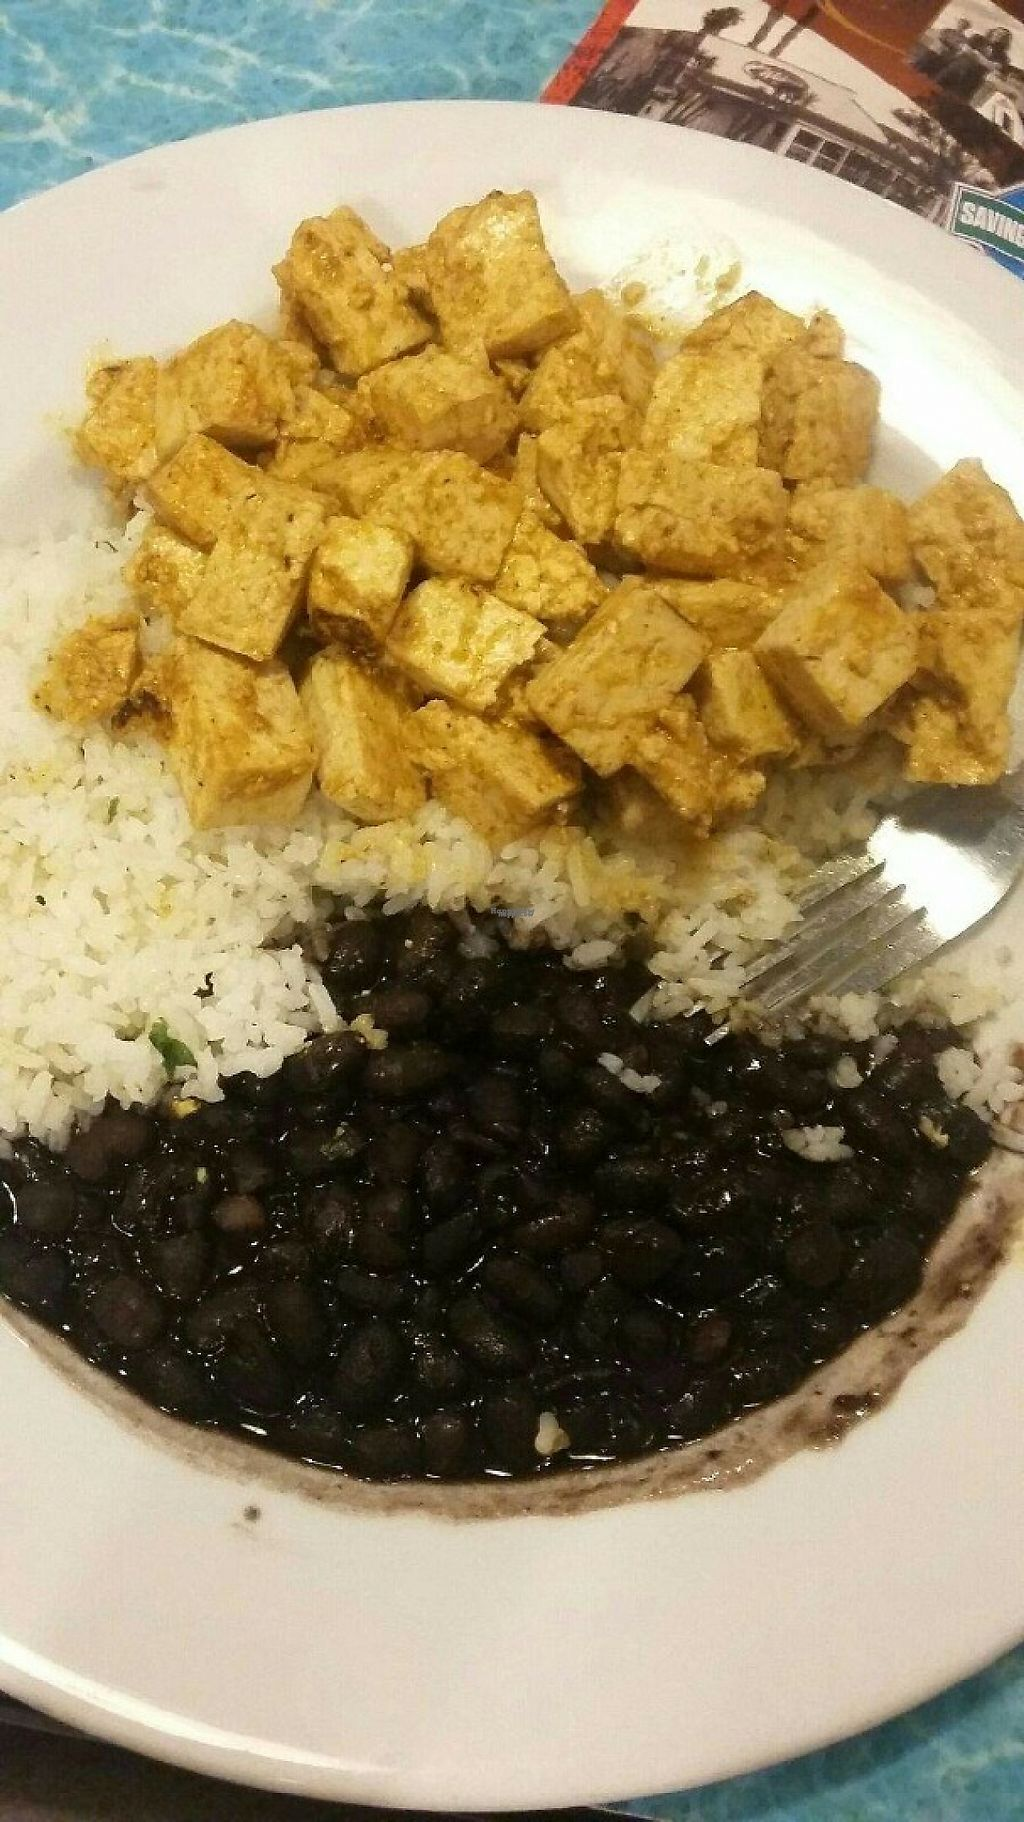 """Photo of Wahoo's  by <a href=""""/members/profile/anastronomy"""">anastronomy</a> <br/>My Wahoo's Bowl: sauteed tofu, black bean, white rice, and pico de gallo on the side <br/> January 8, 2017  - <a href='/contact/abuse/image/28647/209422'>Report</a>"""